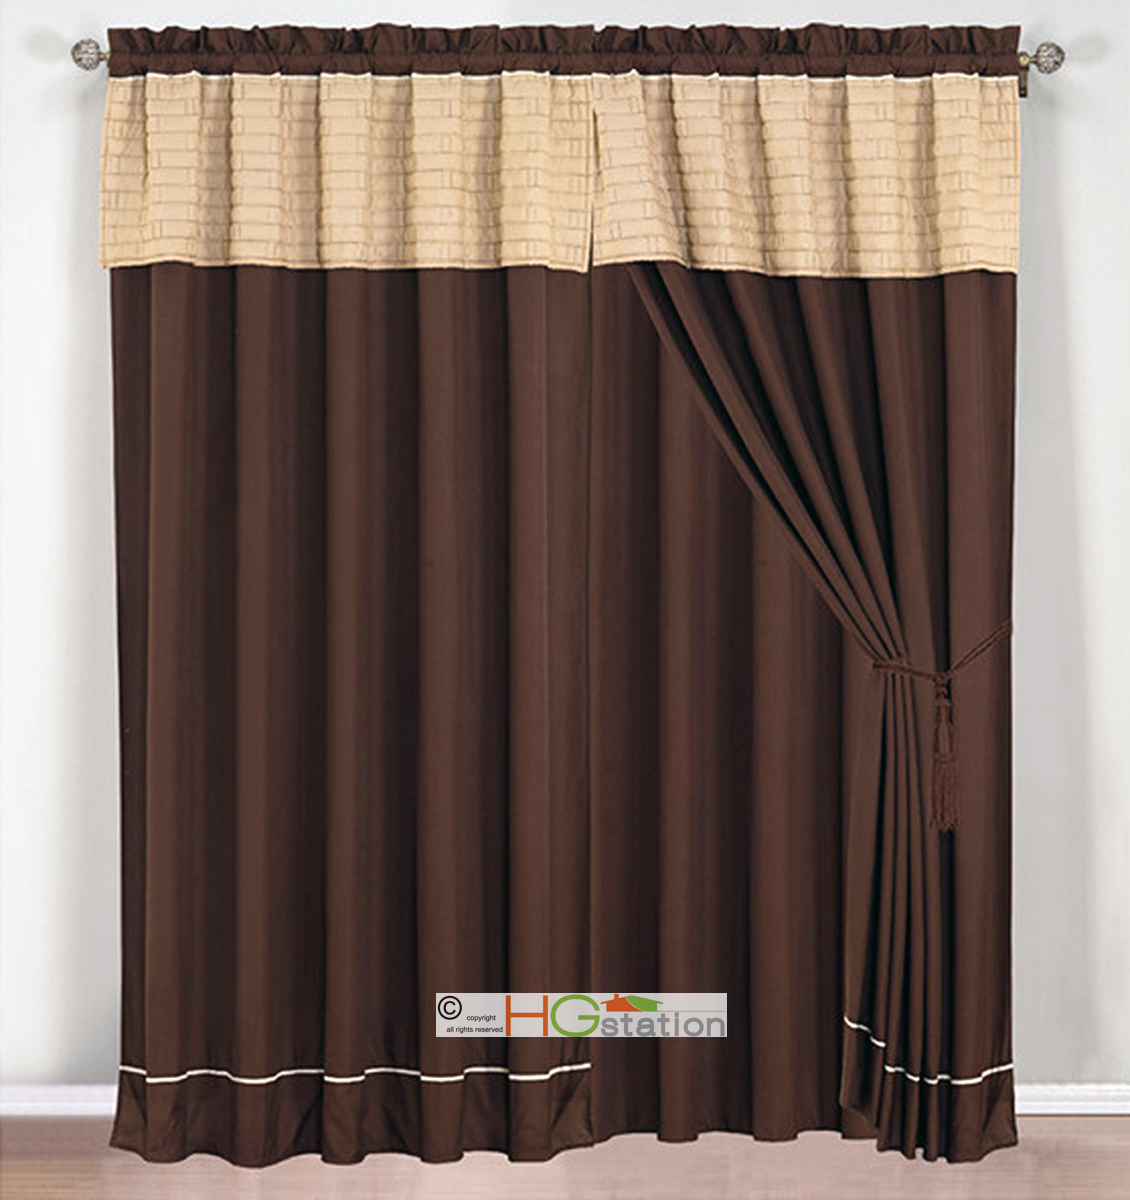 4 PC Brickyard Quilted Curtain Set Tan Coffee Brown Beige